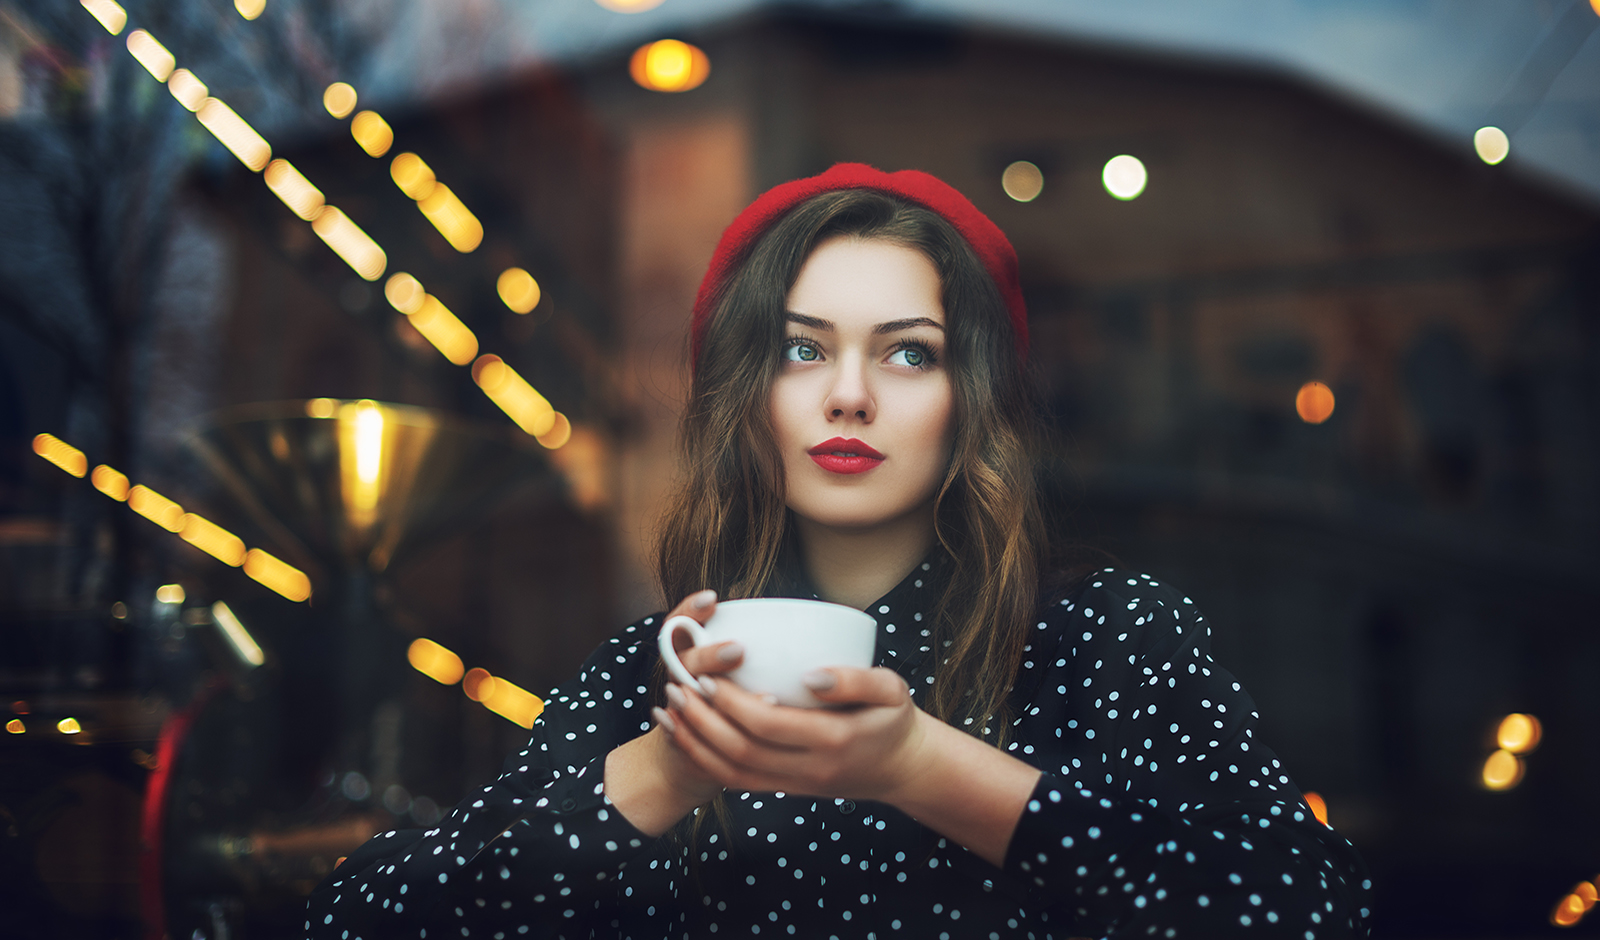 french-woman-makeup-commandments-main-image-woman-in-beret-drinking-coffee